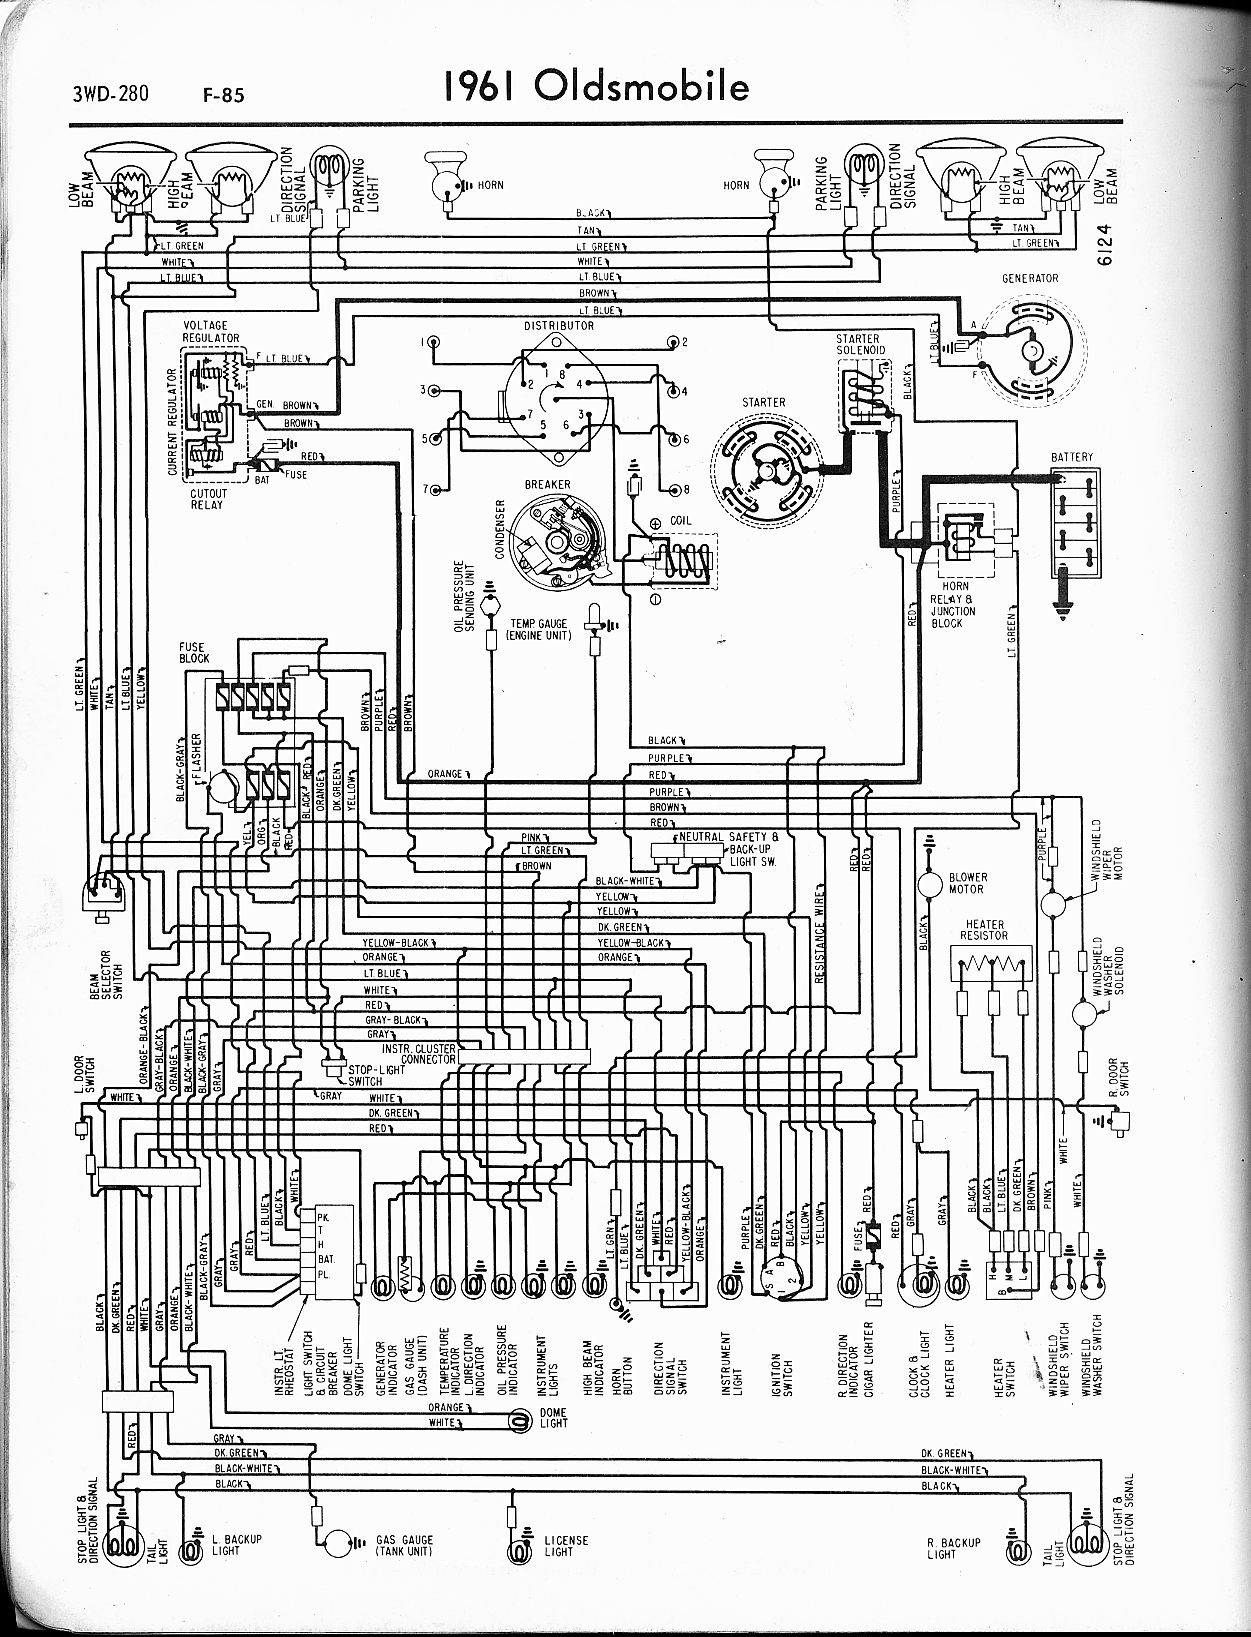 1970 Chevelle Wire Diagram Free Wiring For You 69 1972 Temp Gauge Simple Schema Rh 32 Aspire Atlantis De